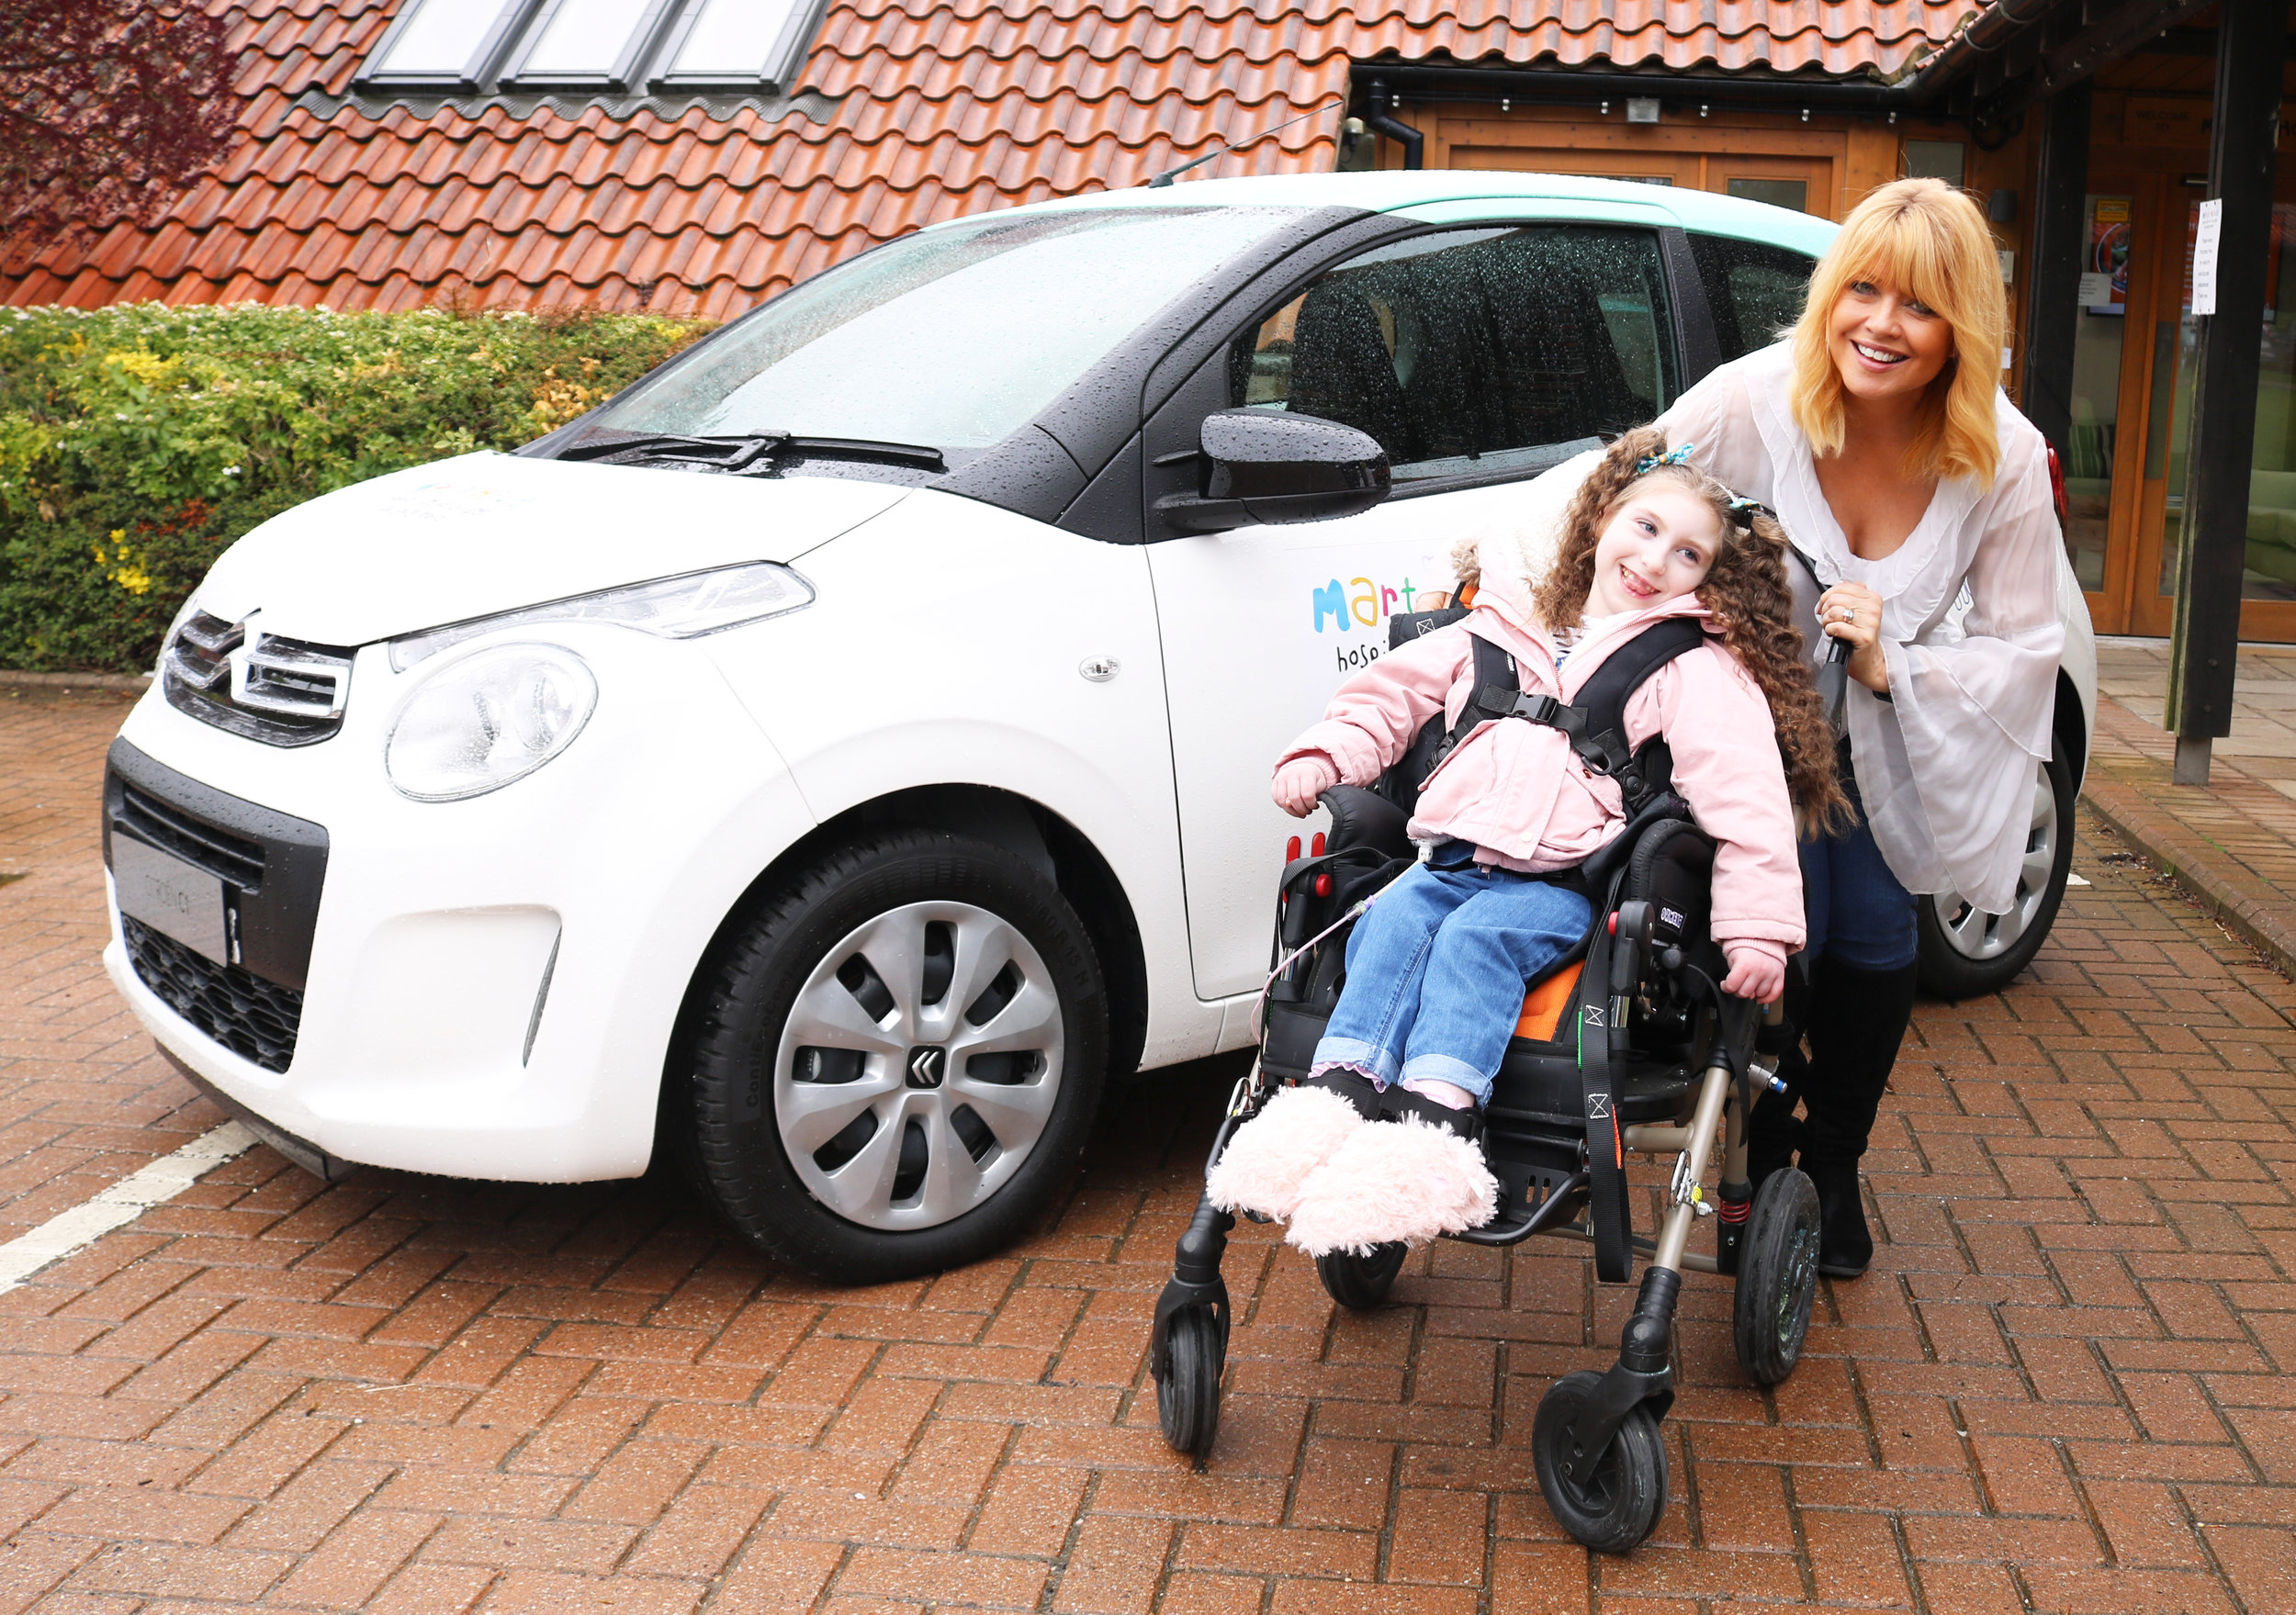 Christine Talbot launches the Martin House Grand Car Raffle with the help of Lacie-Lea Rennie.